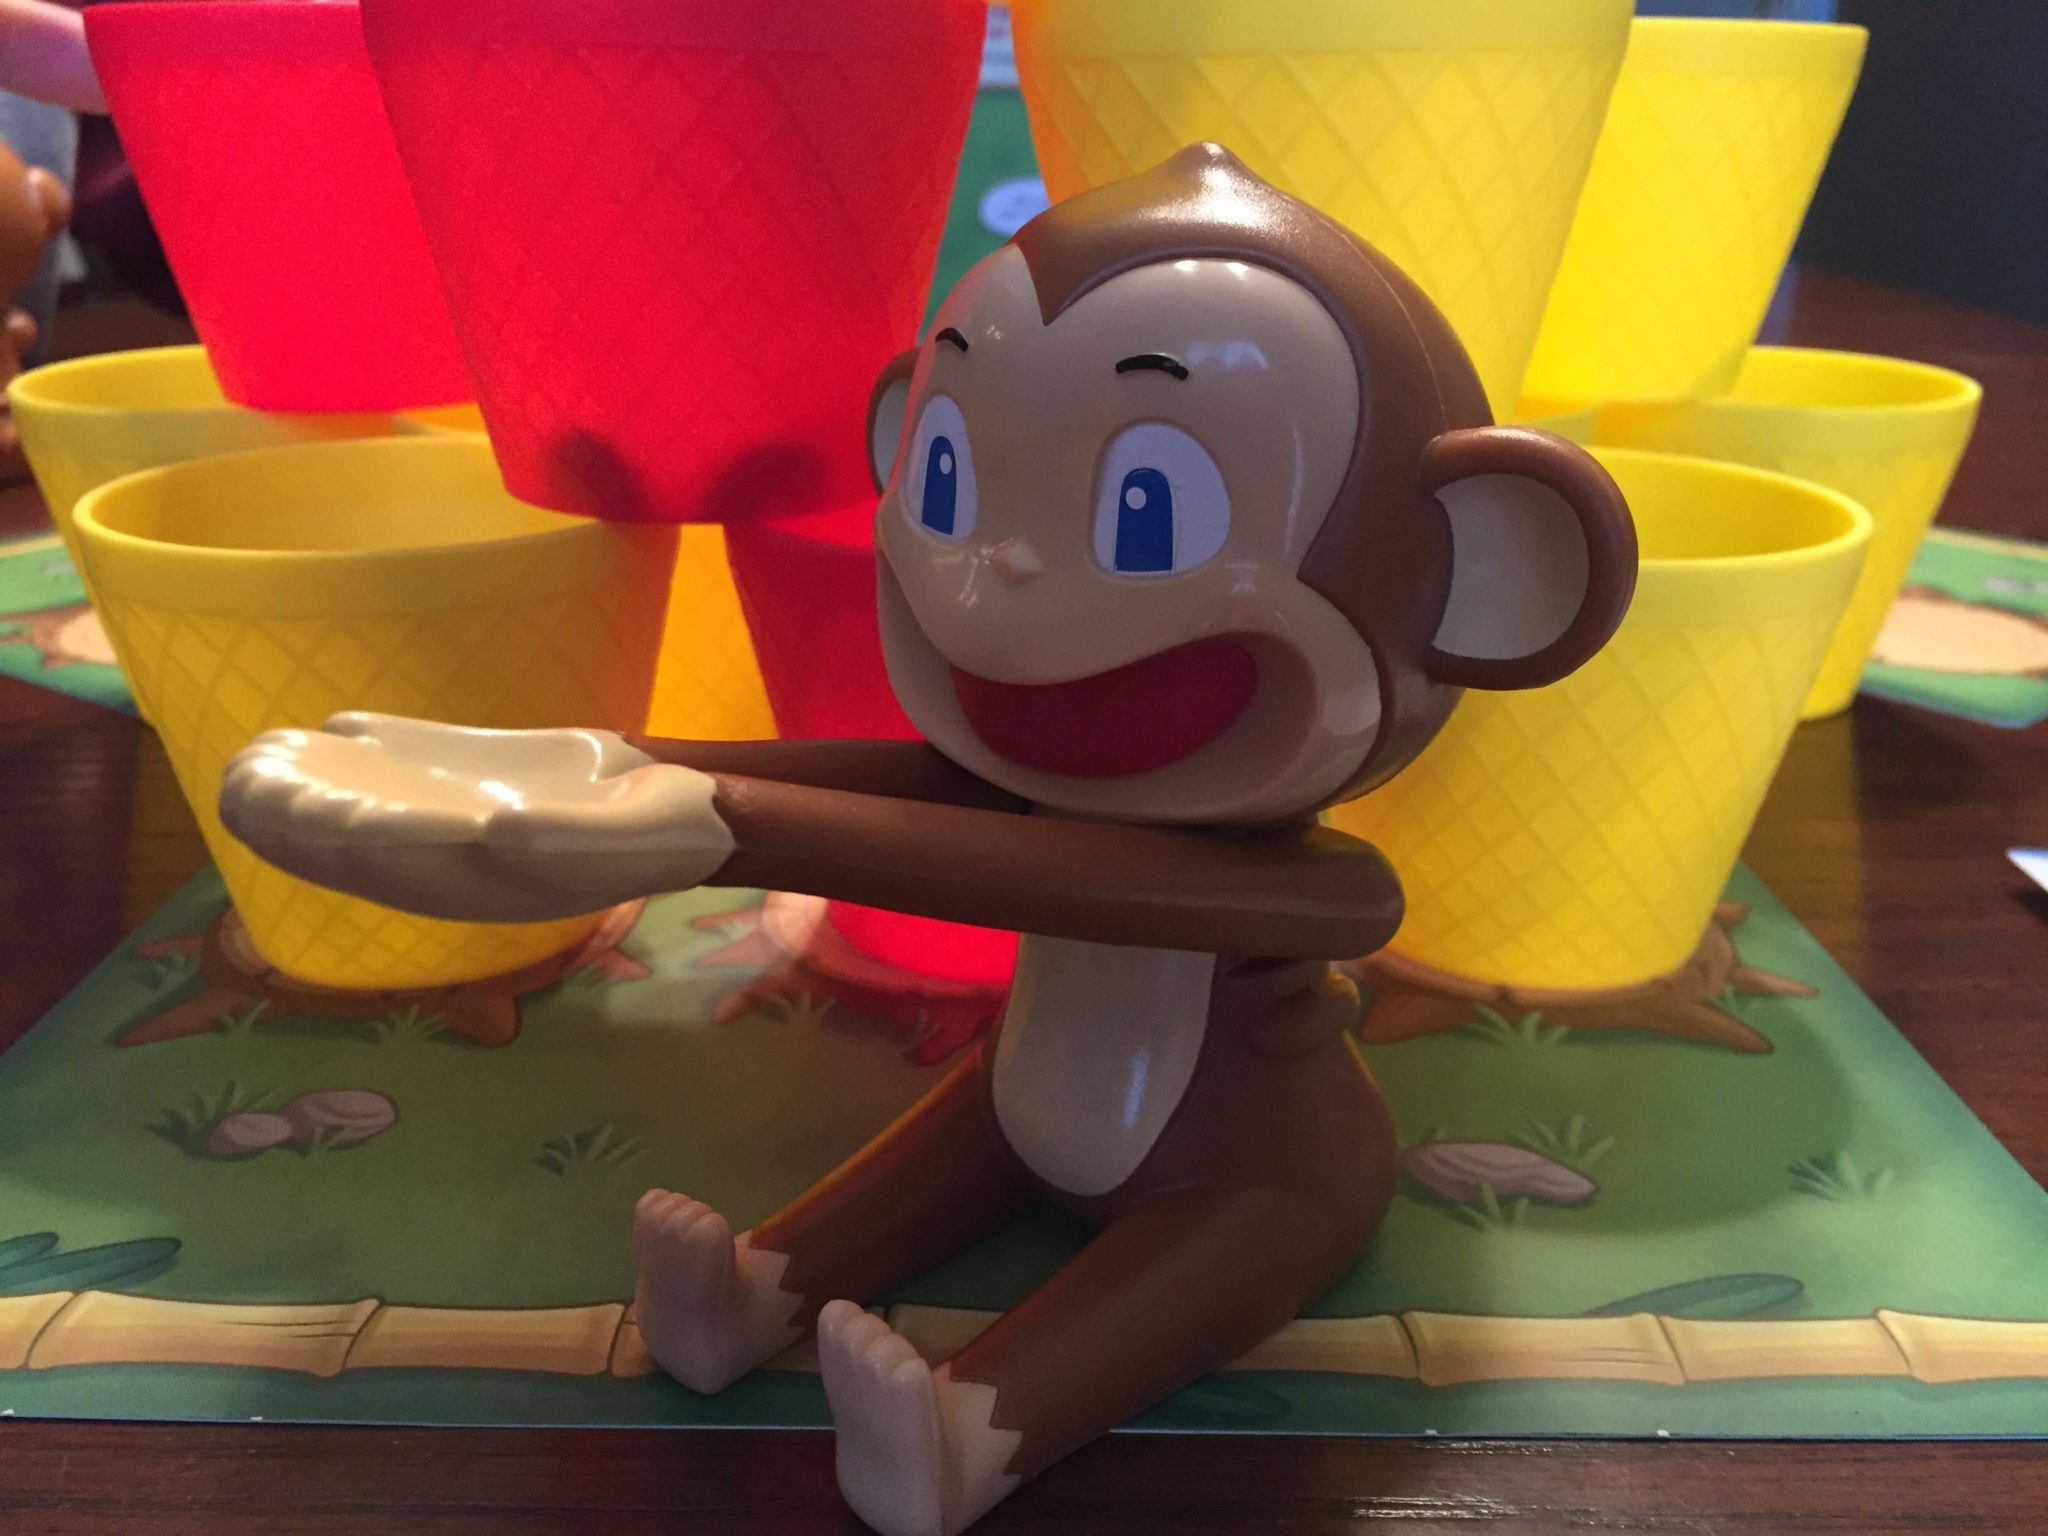 A close-up of one of the toy monkeys, with red and yellow cups stacked up behind it.